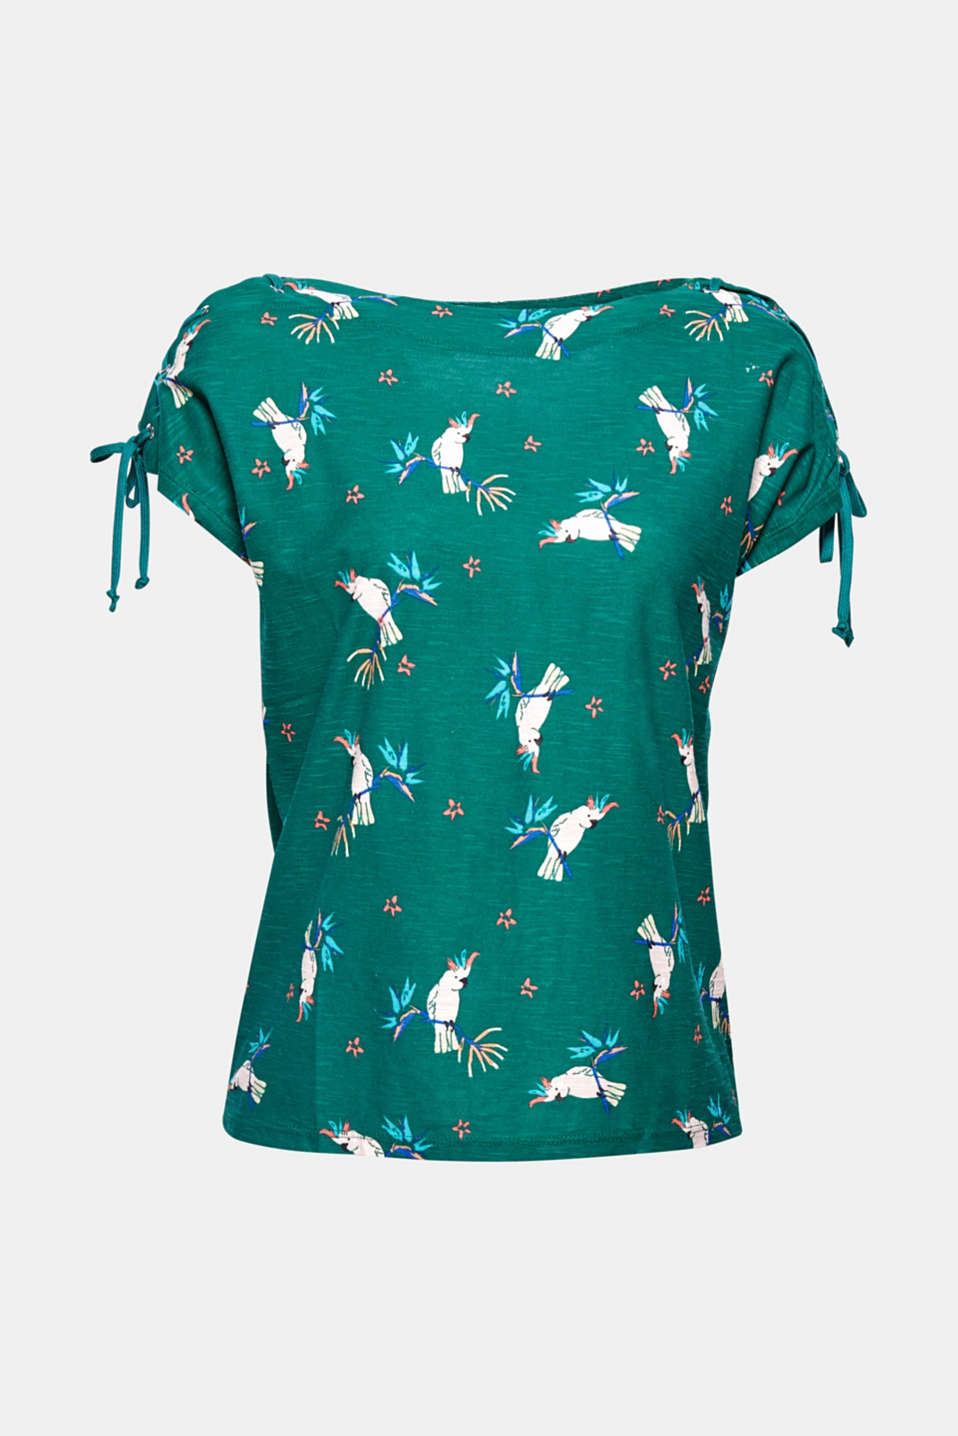 This bateau neck T-shirt oozes summer vibes with lace-up shoulders and a charming retro print.